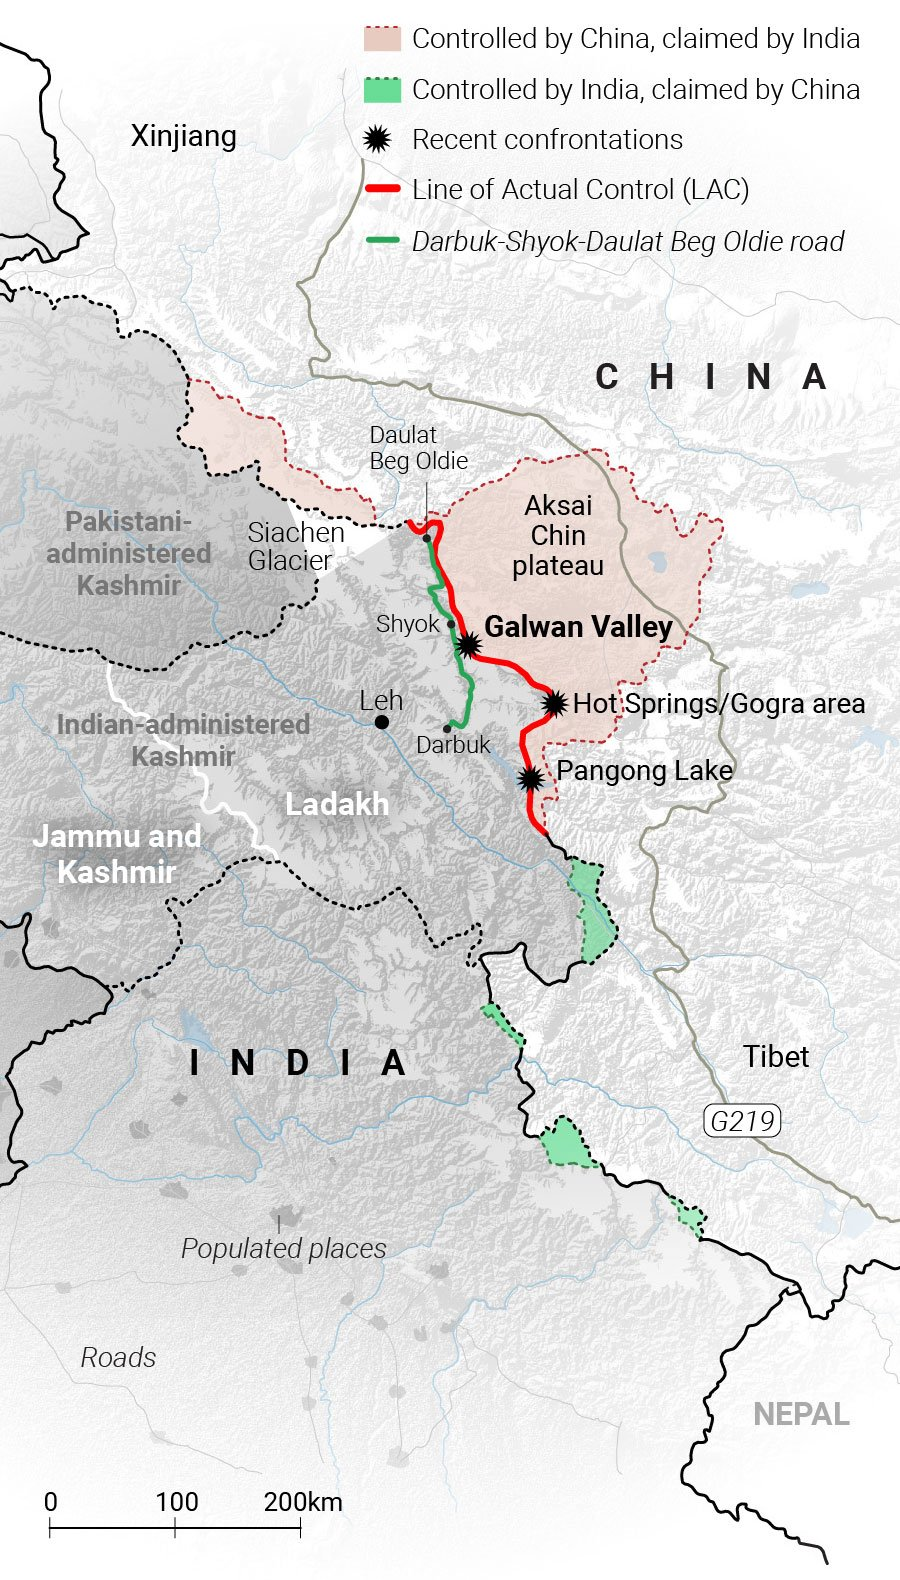 Why India-China border clash in Galwan Valley turned into deadly brawl